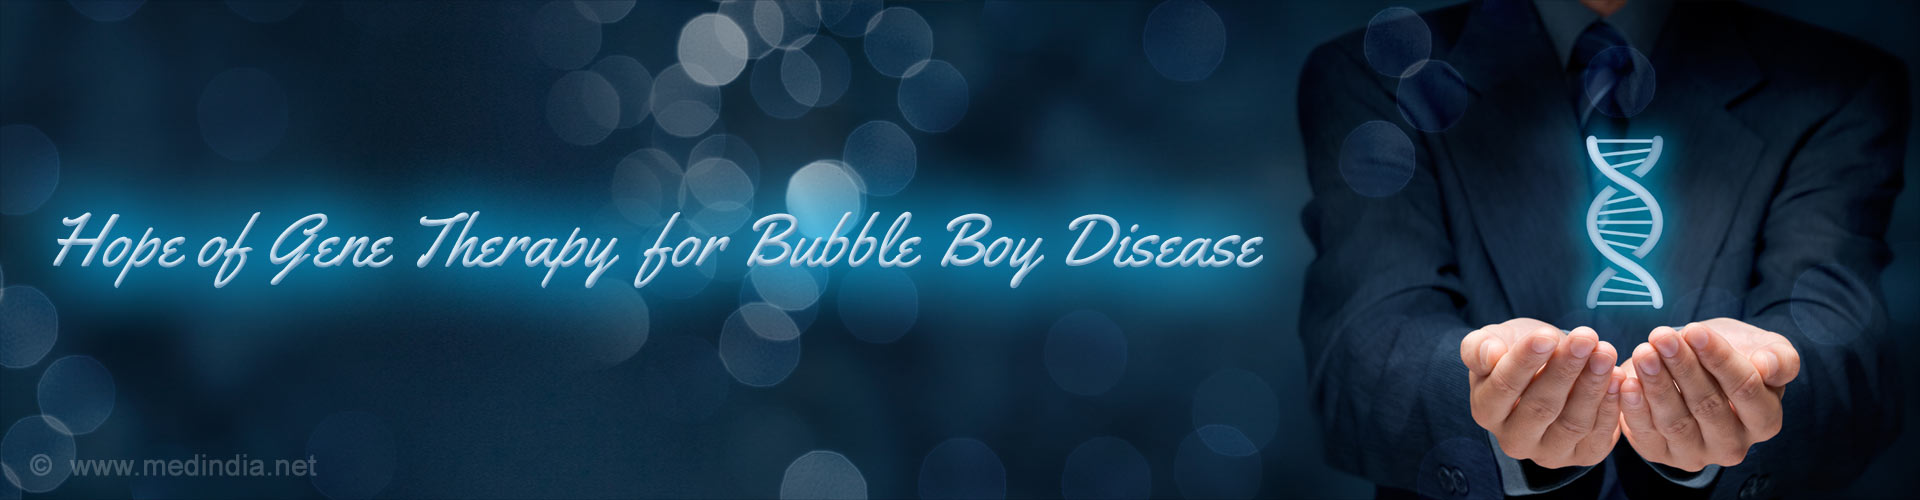 Gene Therapy Brings Hope for Bubble Boy Disease Treatment